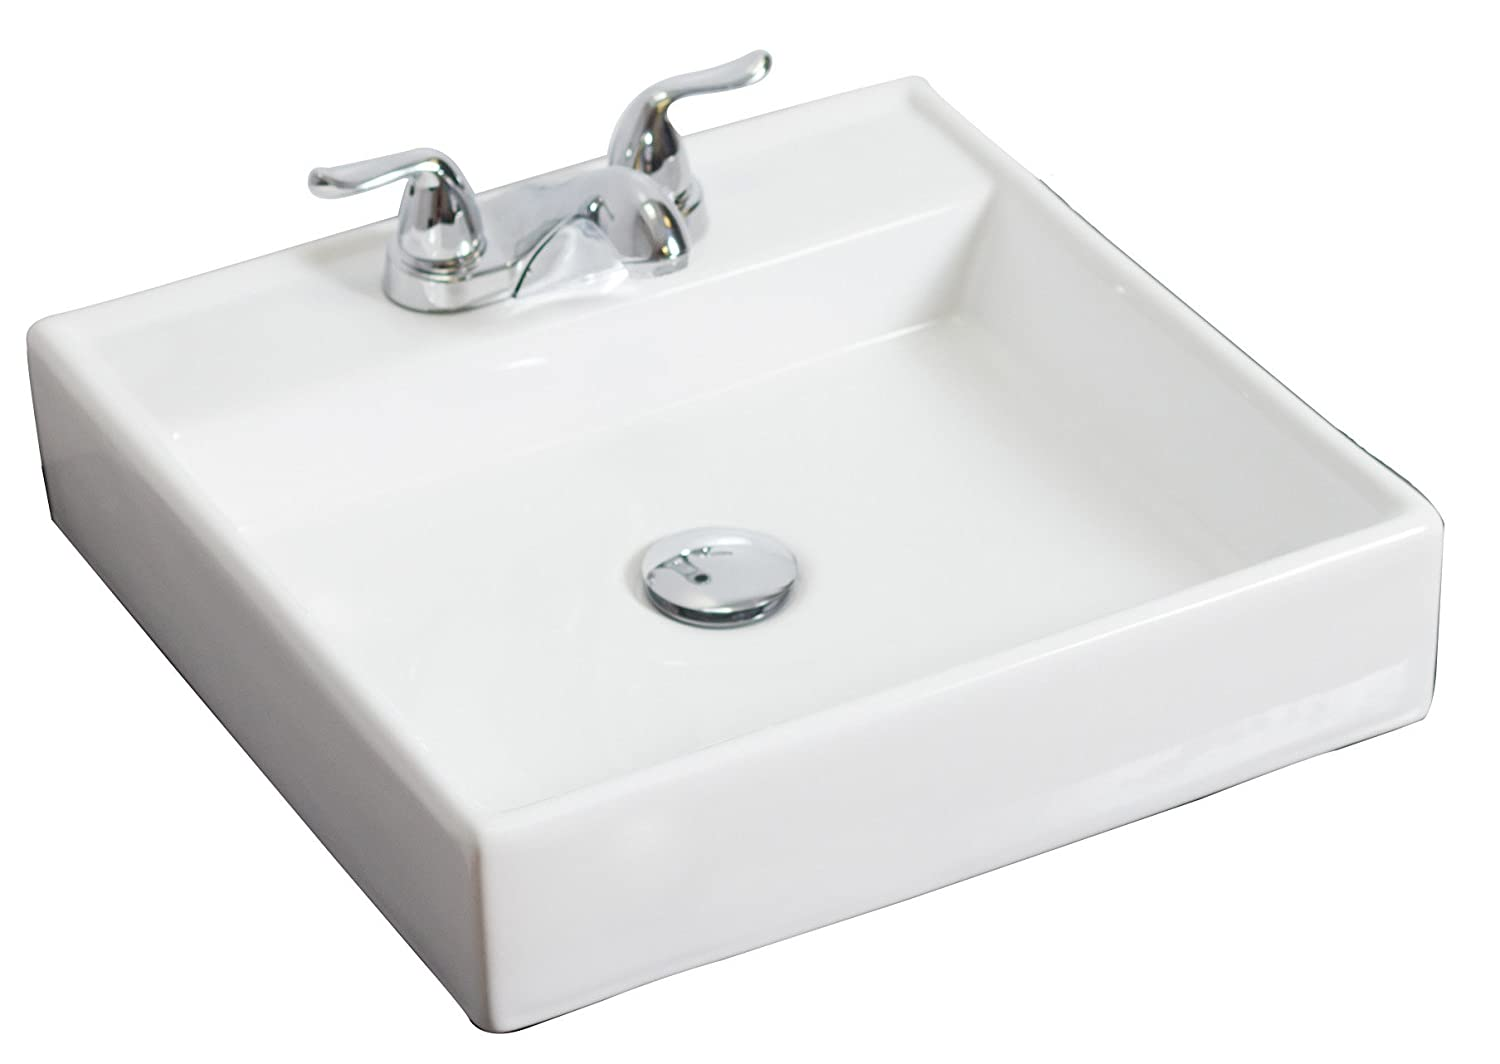 American Imaginations AI-12-596 Above Counter Square Vessel for 4-Inch OC Faucet, 17.5-Inch x 17.5-Inch, White IMG Imports Inc.